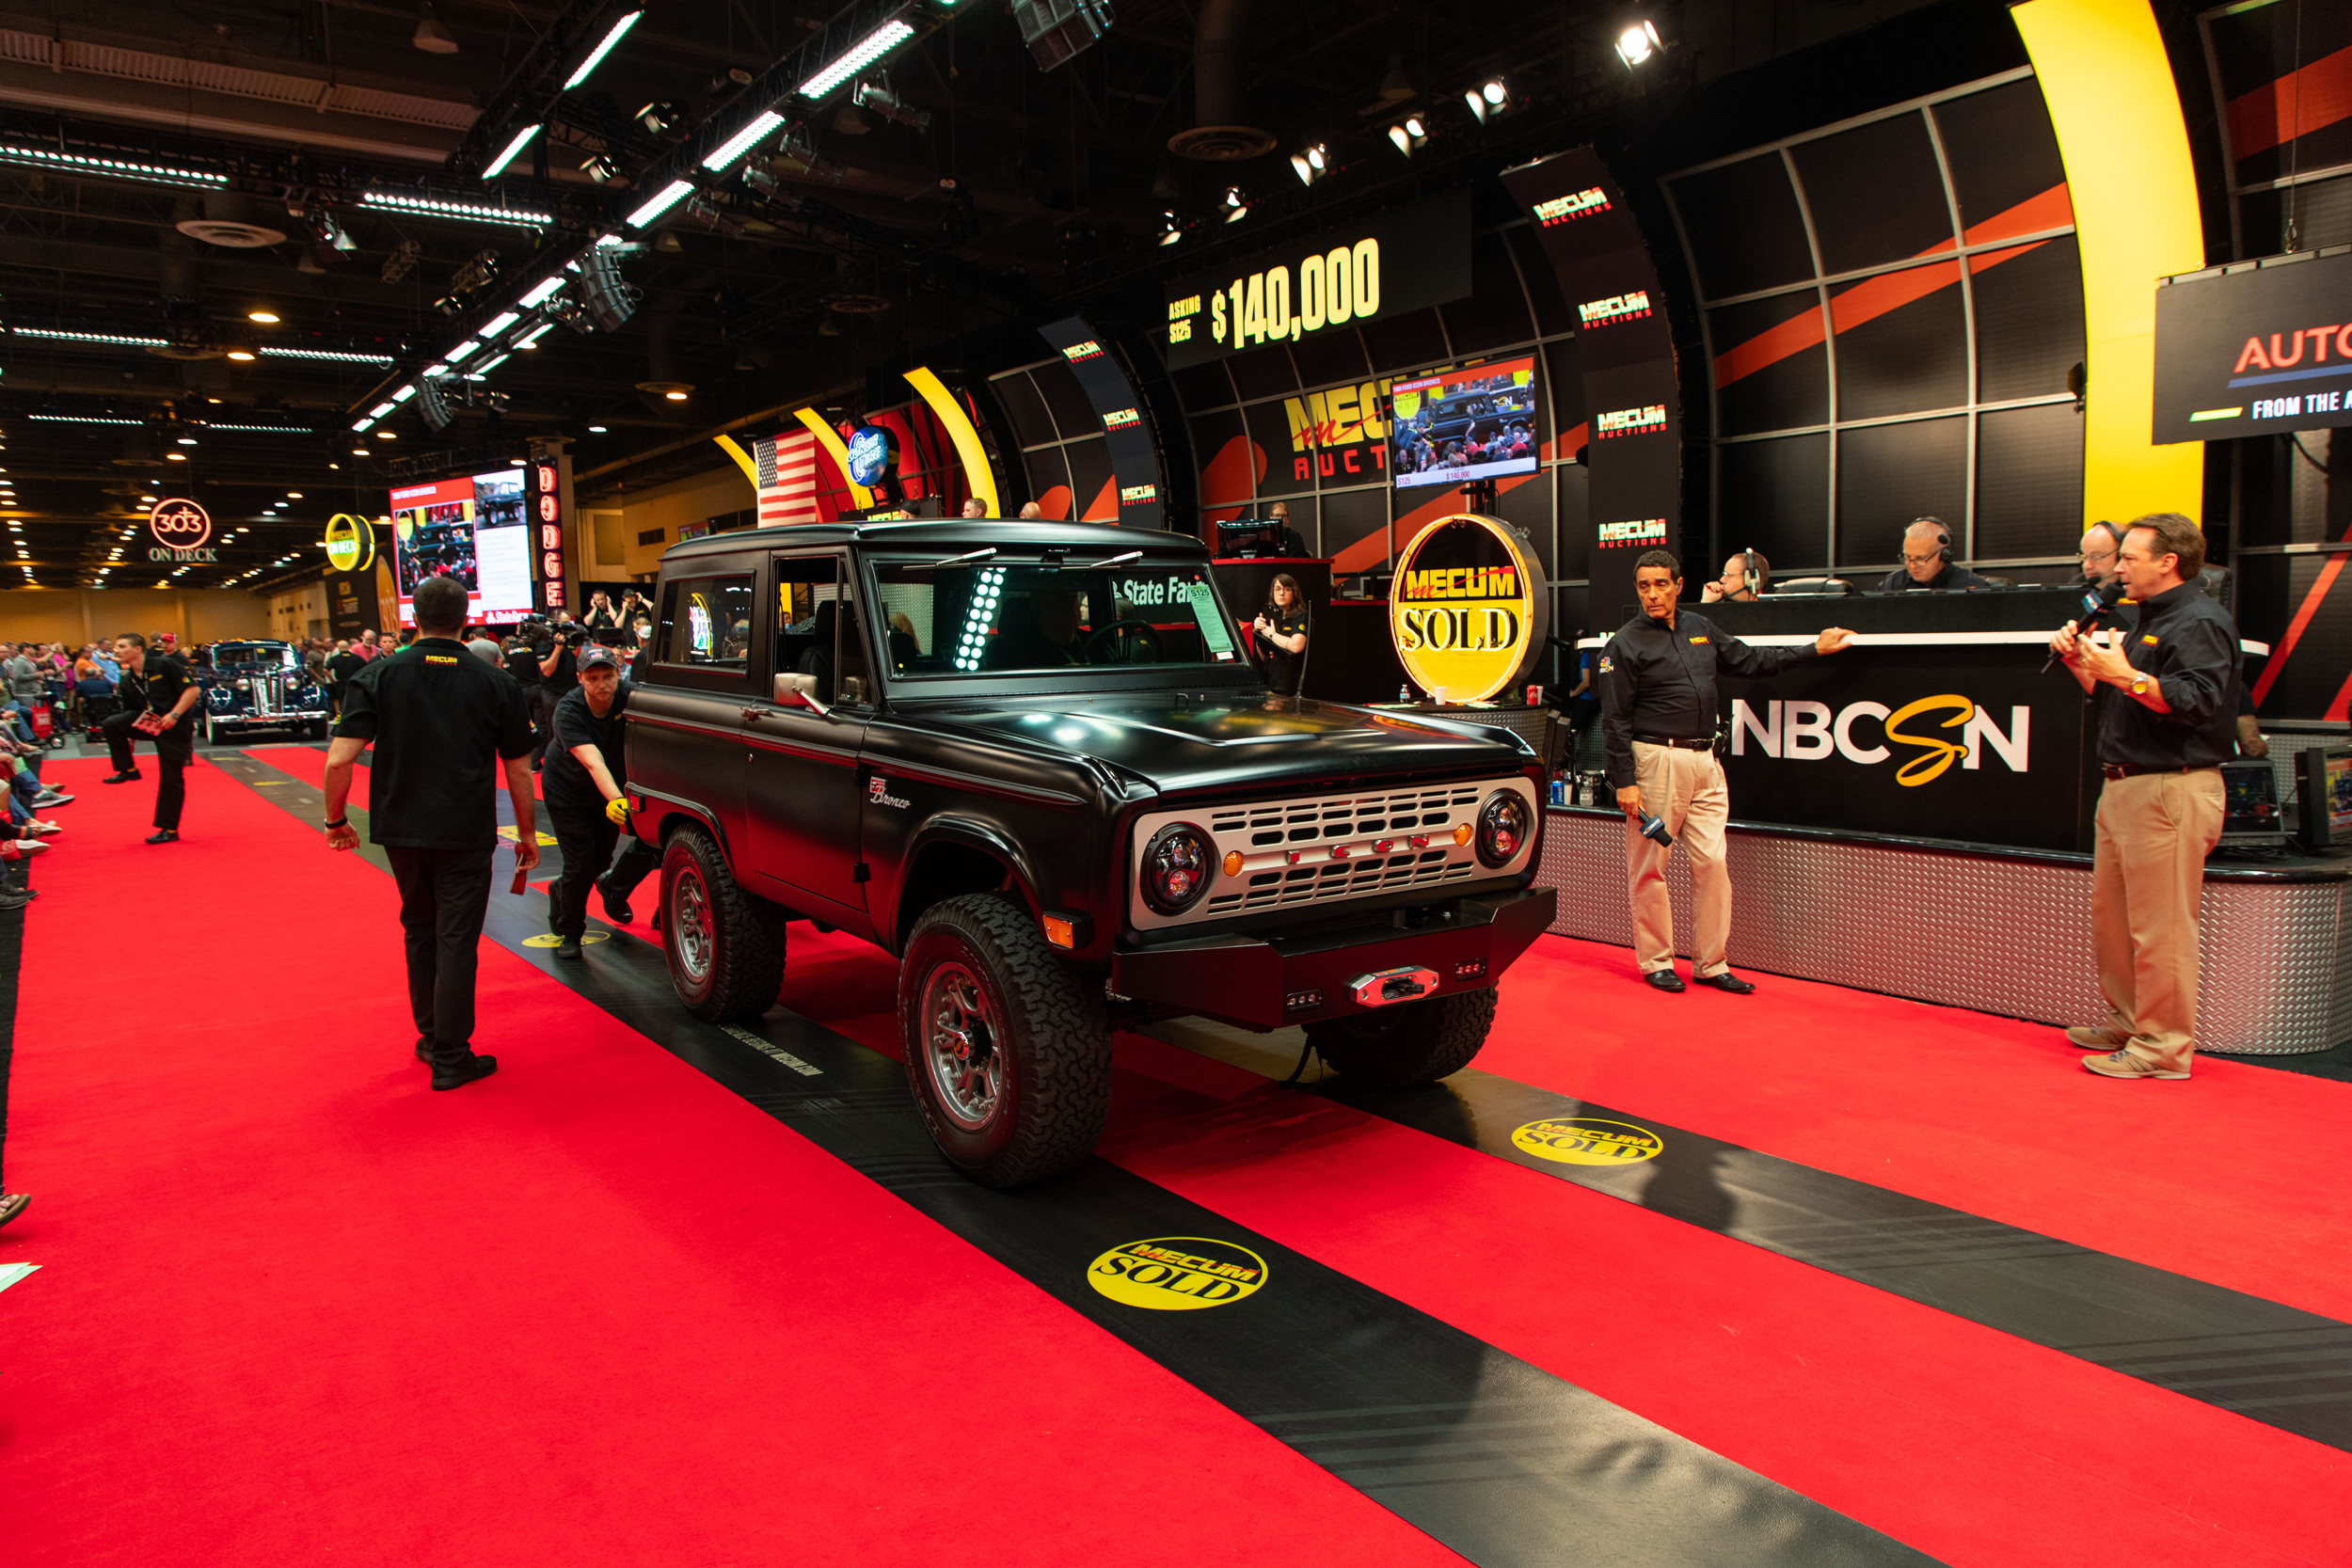 1968 Ford Icon Bronco (Lot S125) Sells at $192,500 - Mecum Houston 2019